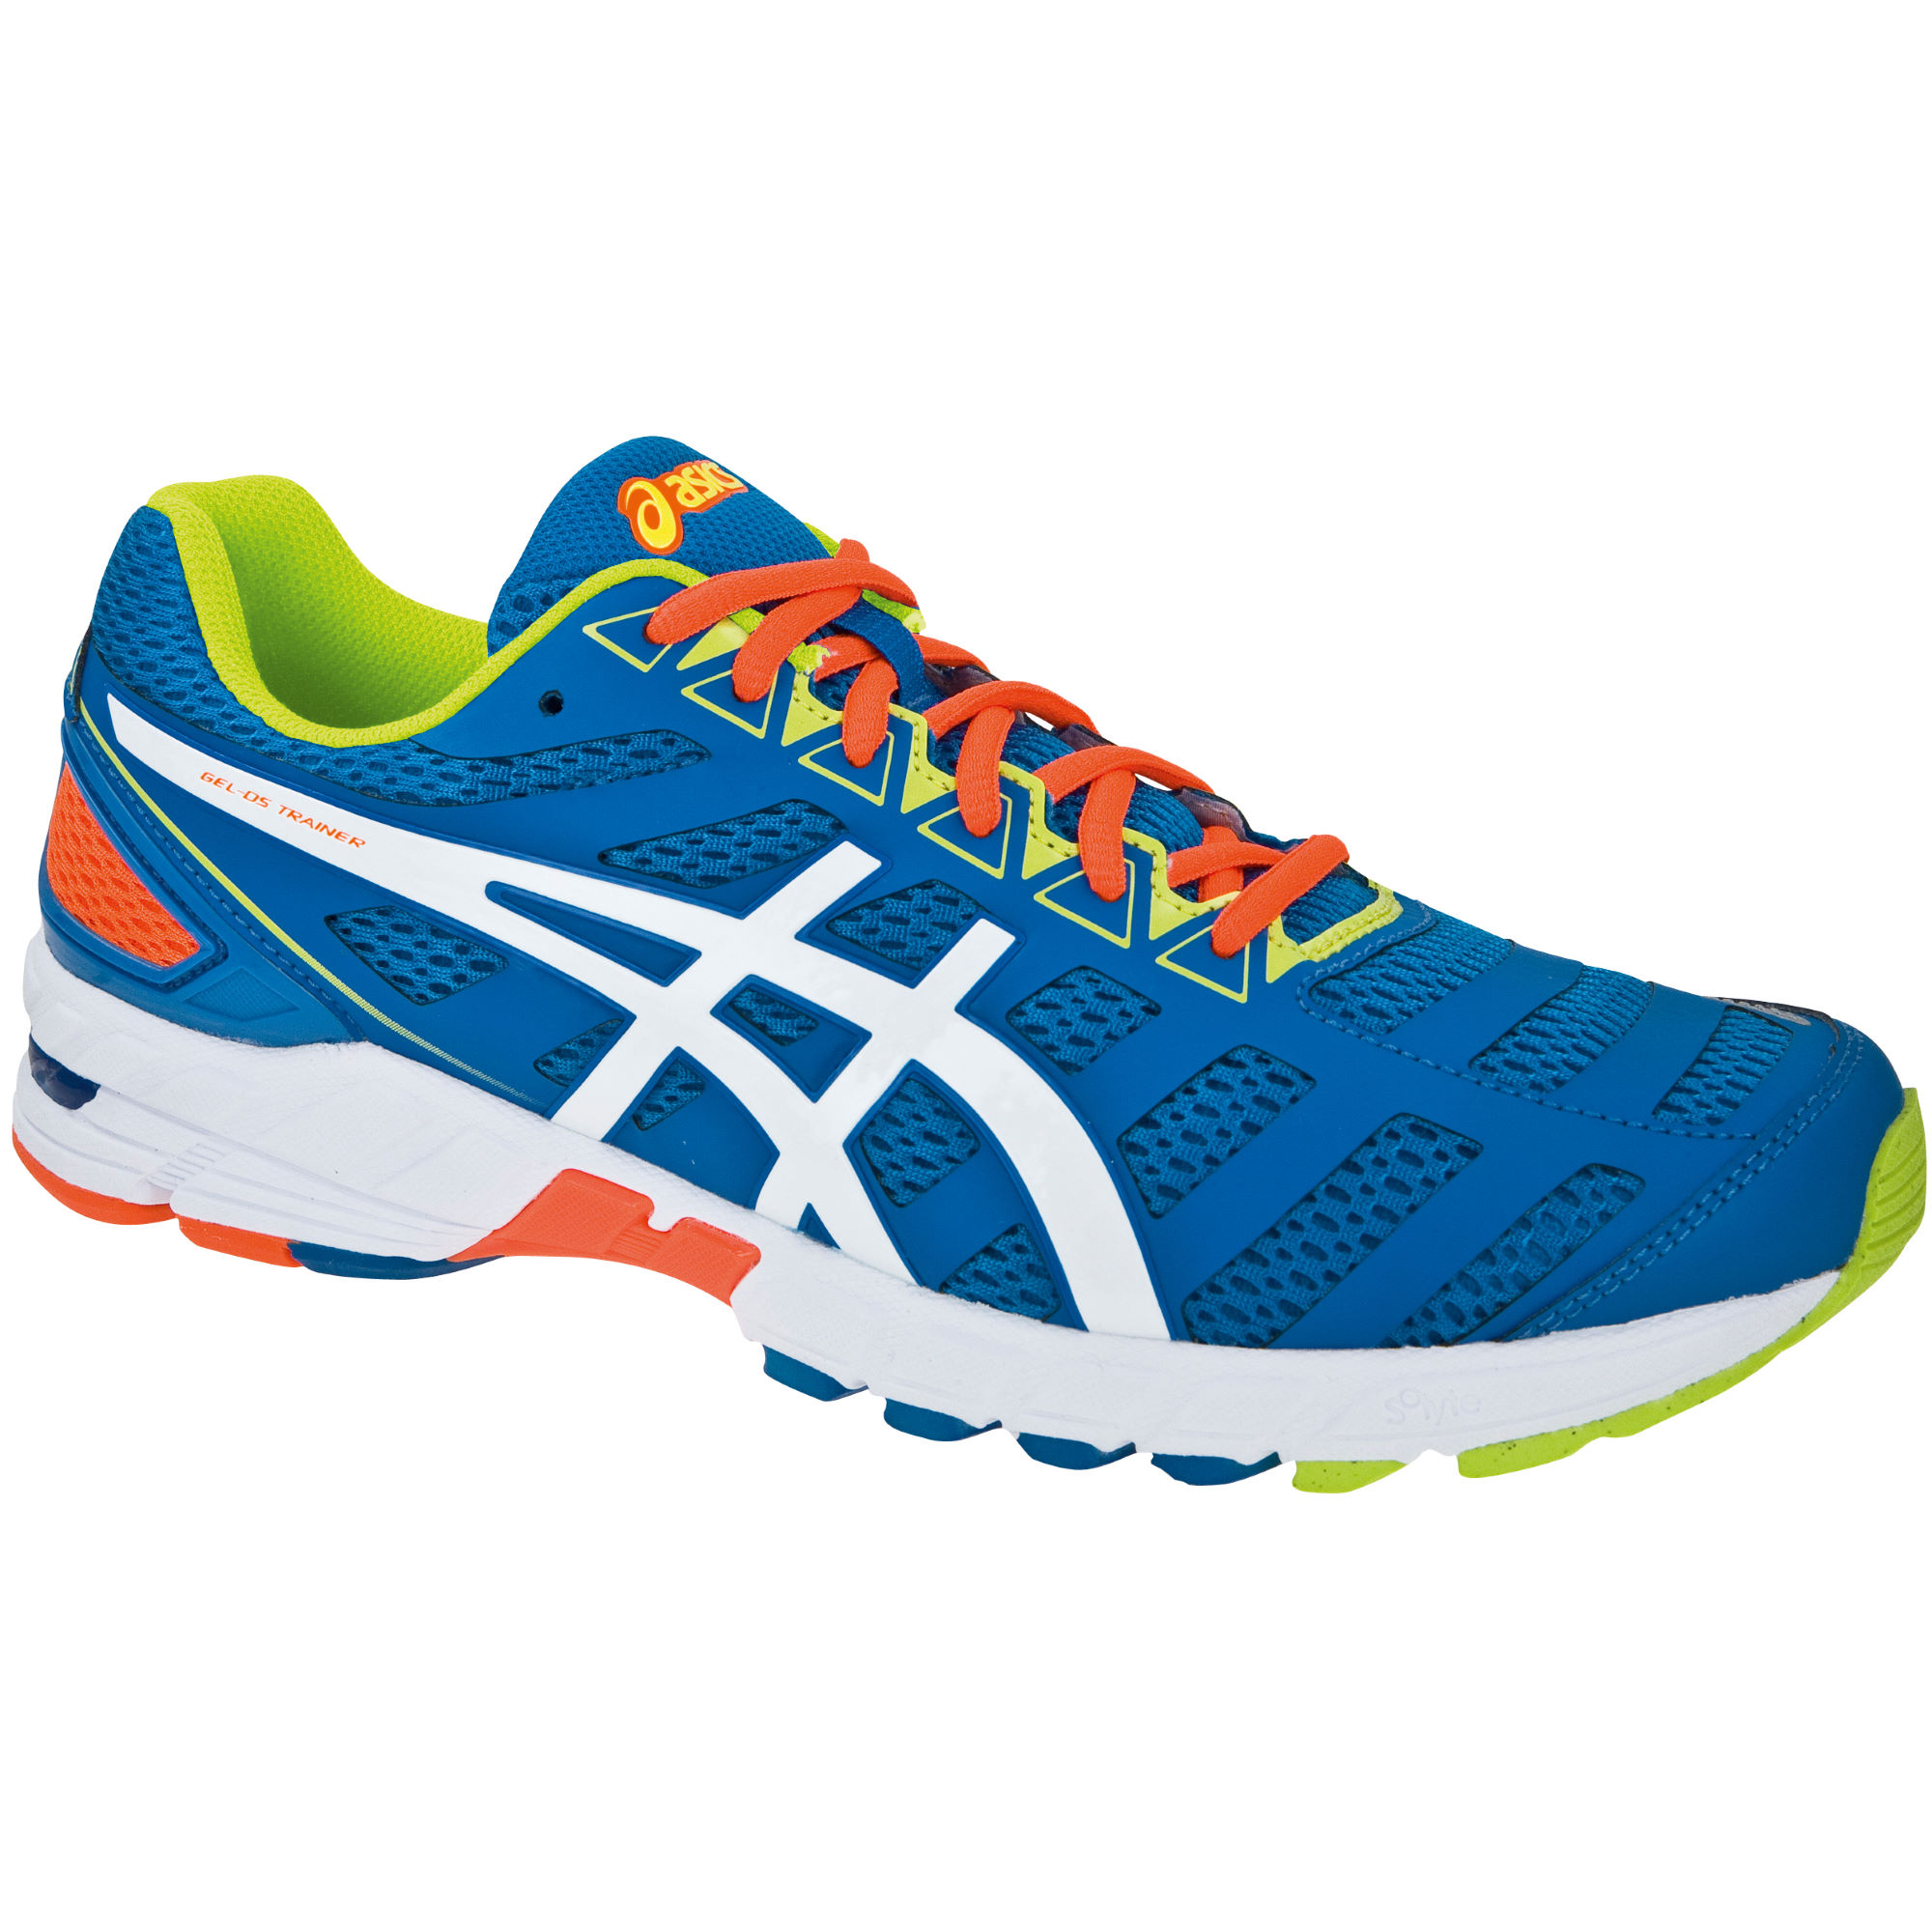 Zapatillas asics running 2014 zapatillas running asics gel - Asics Gel Ds Trainer 18 Shoes Aw13